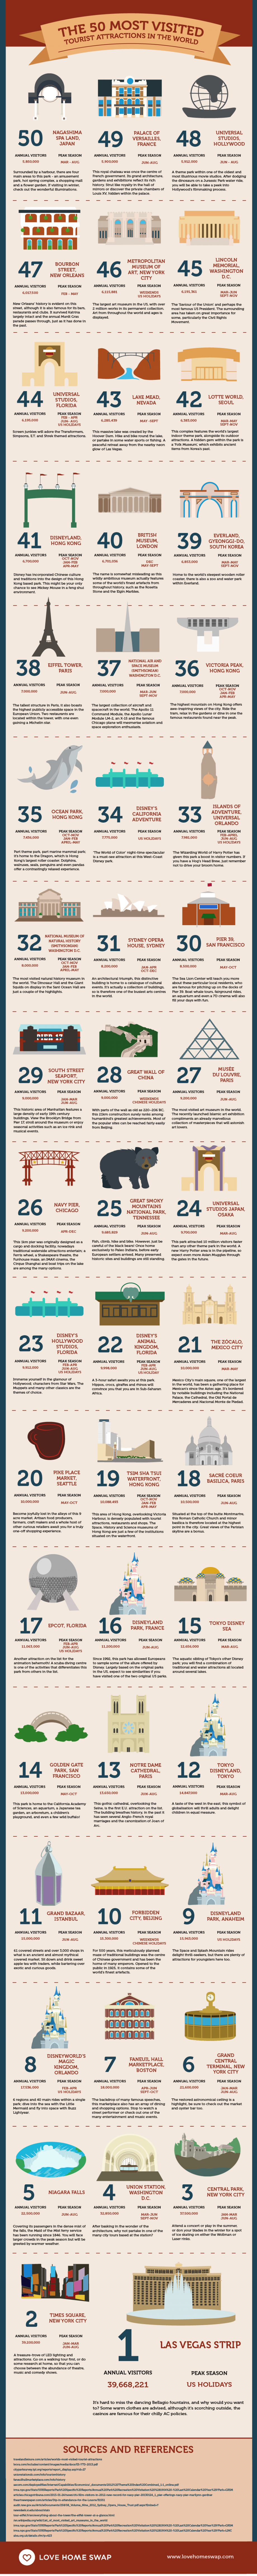 50 Most Visited Tourist Attractions In The World - AspirantSG